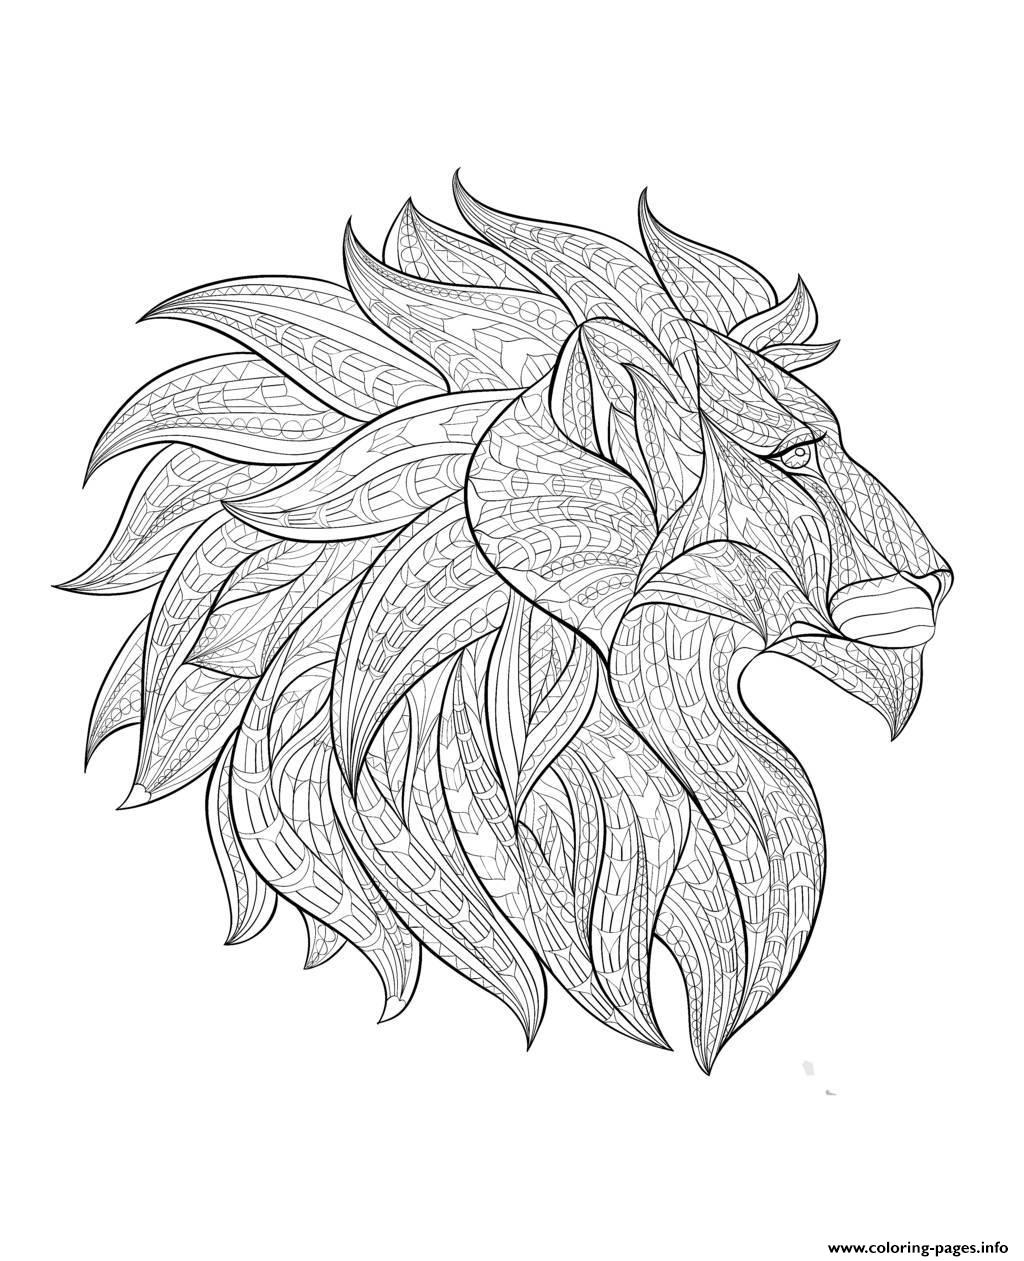 lion coloring pages for adults - adult africa lion head profile printable coloring pages book 3608